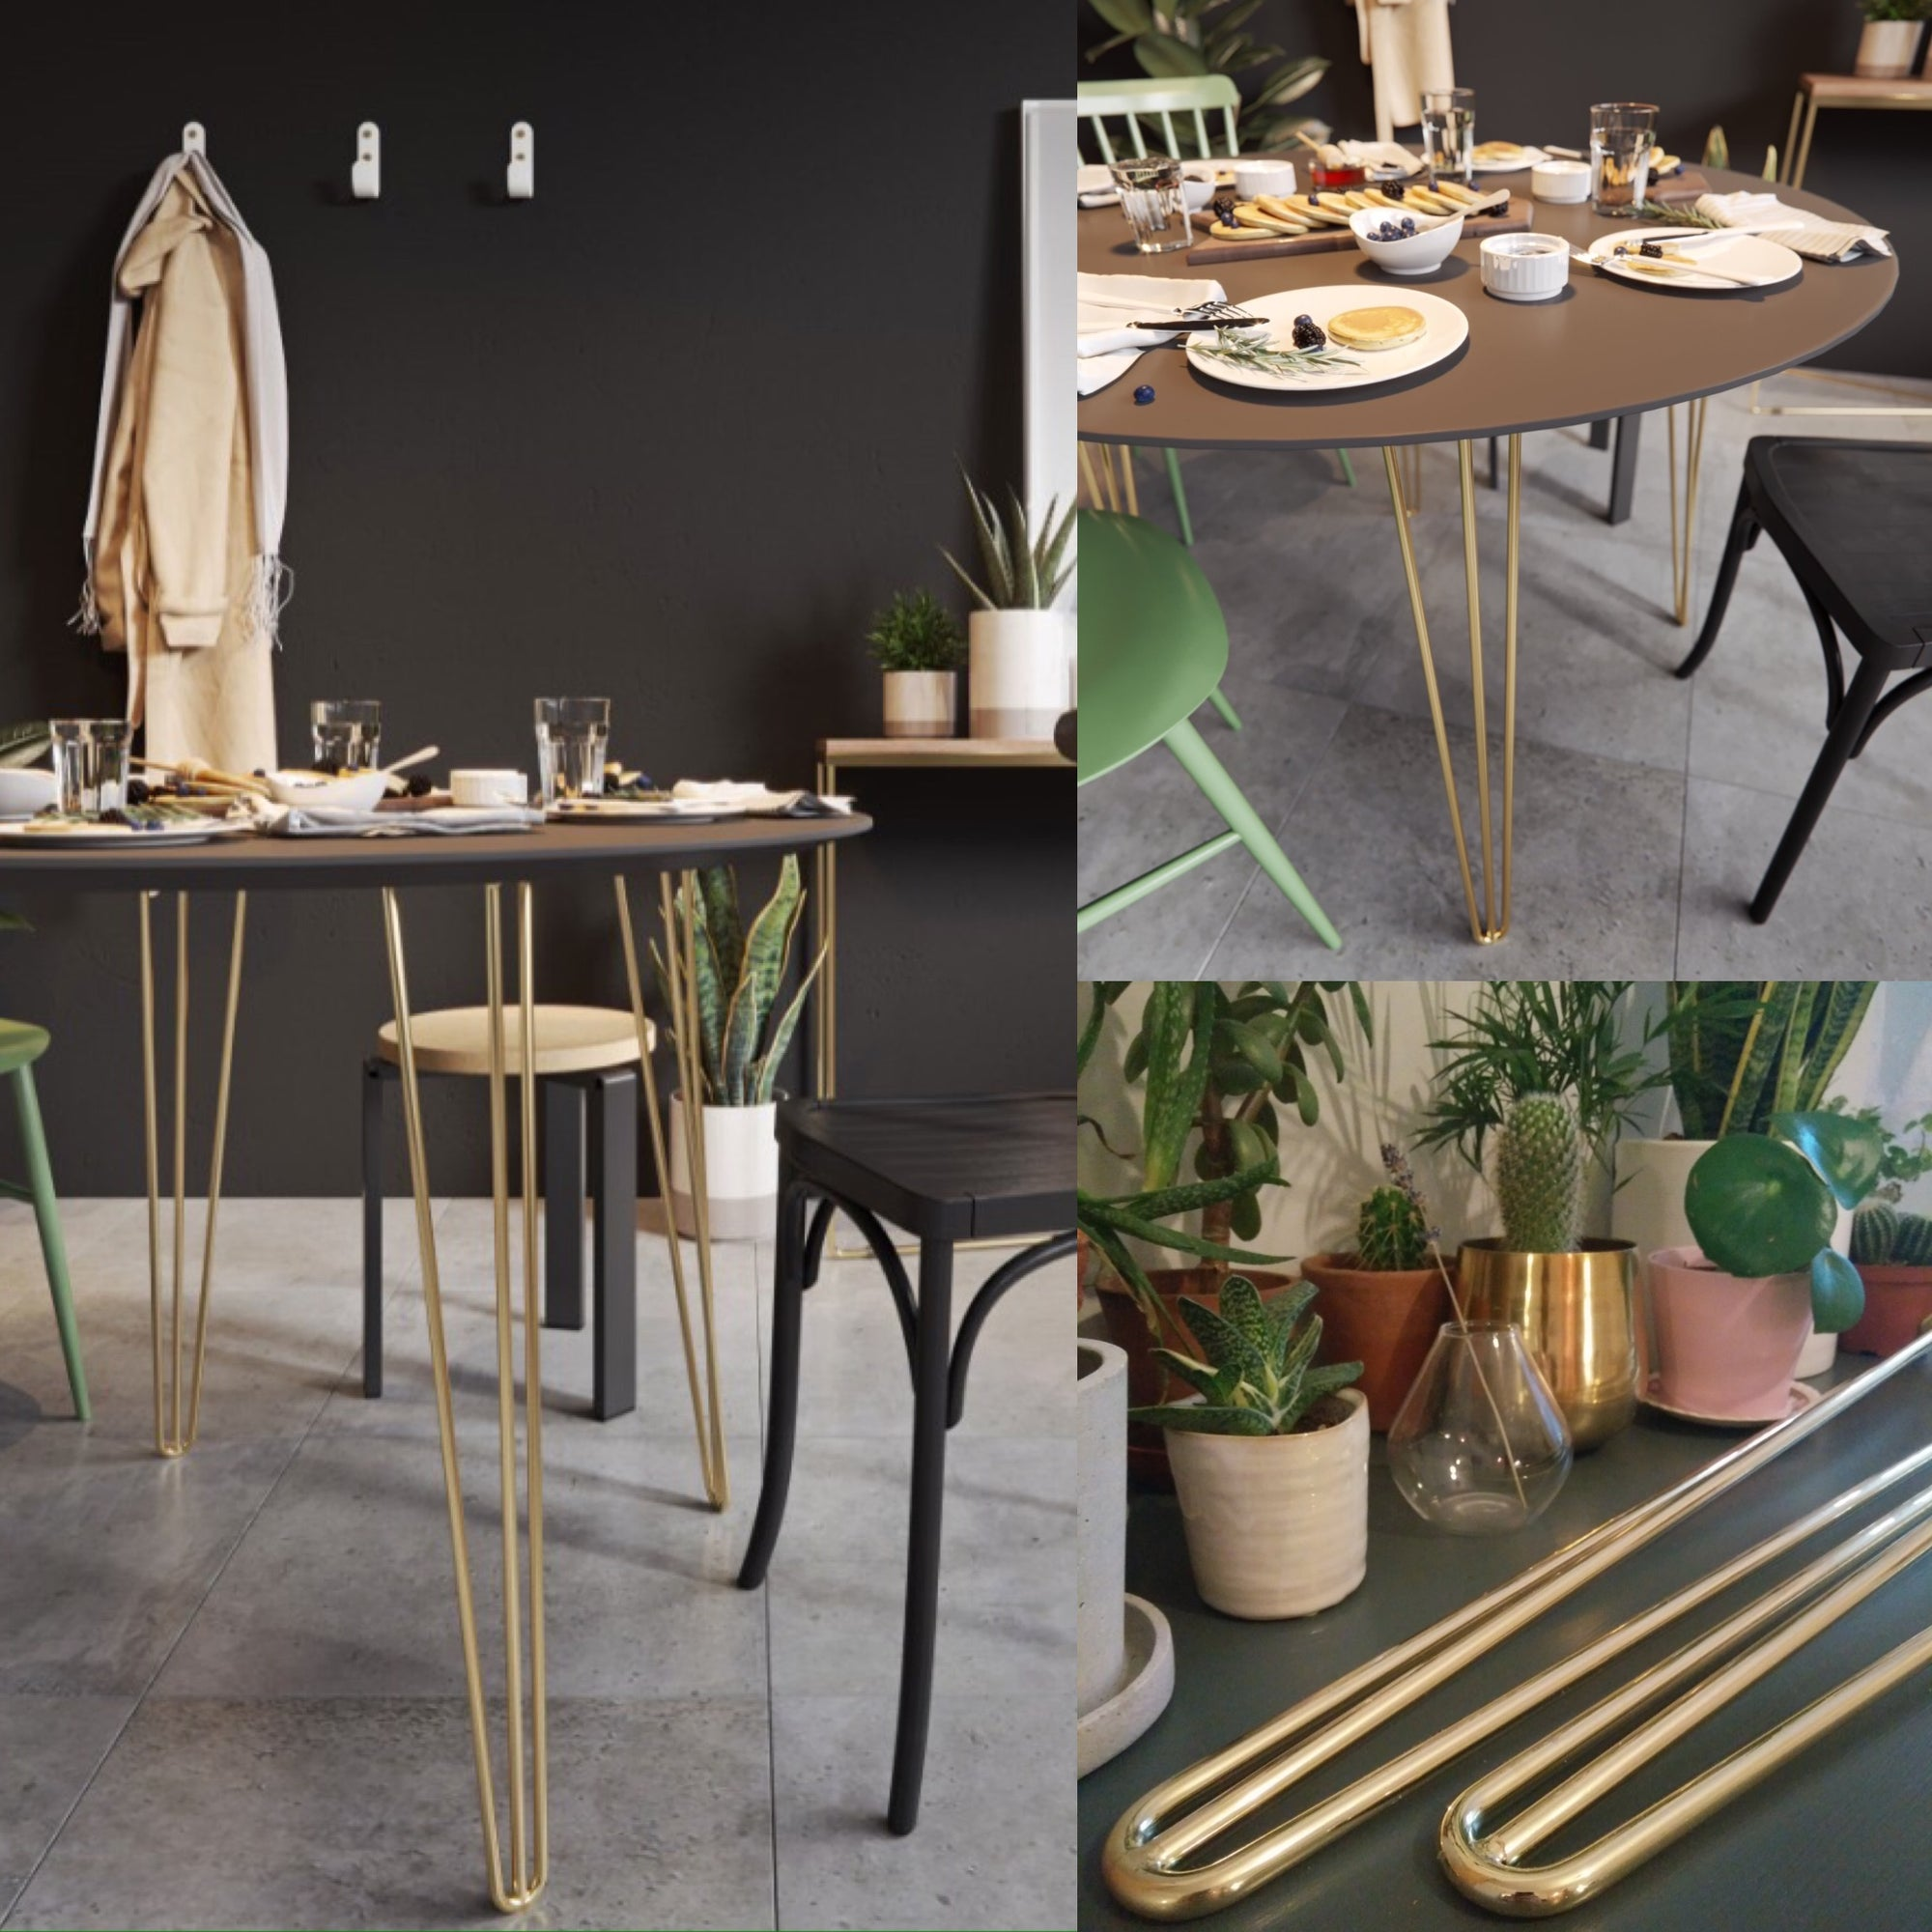 Brazen beauties: New brass hairpin legs